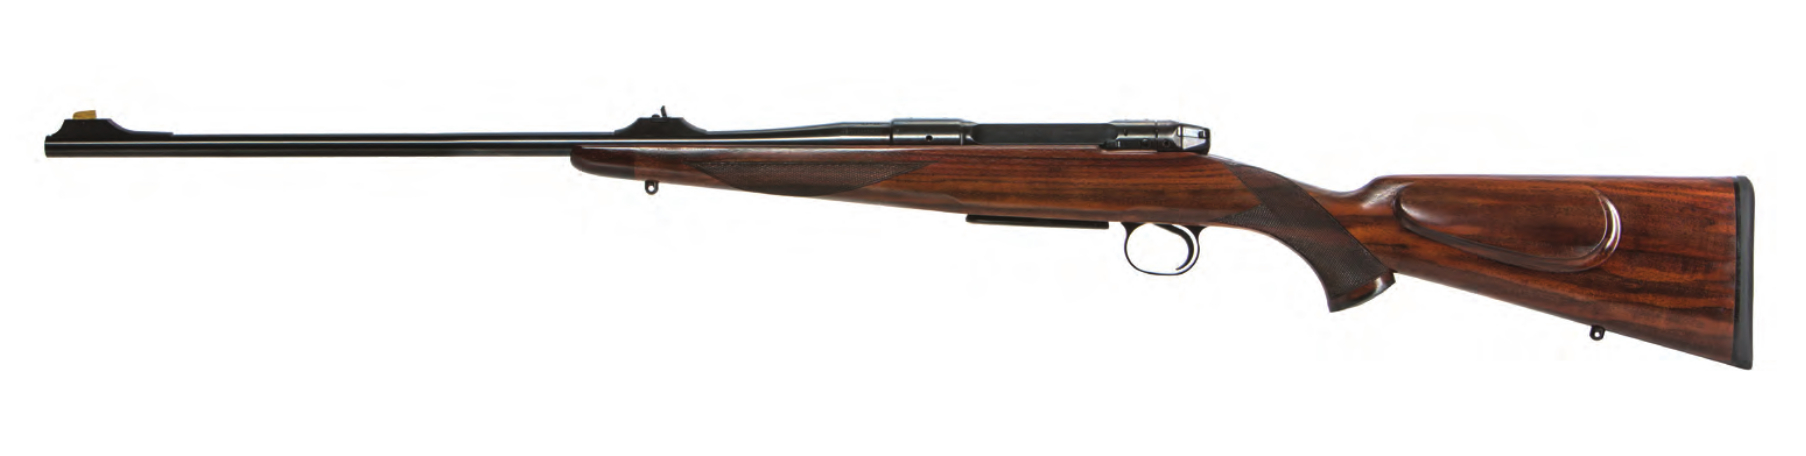 Heym SR30 straight pull bolt action rifle